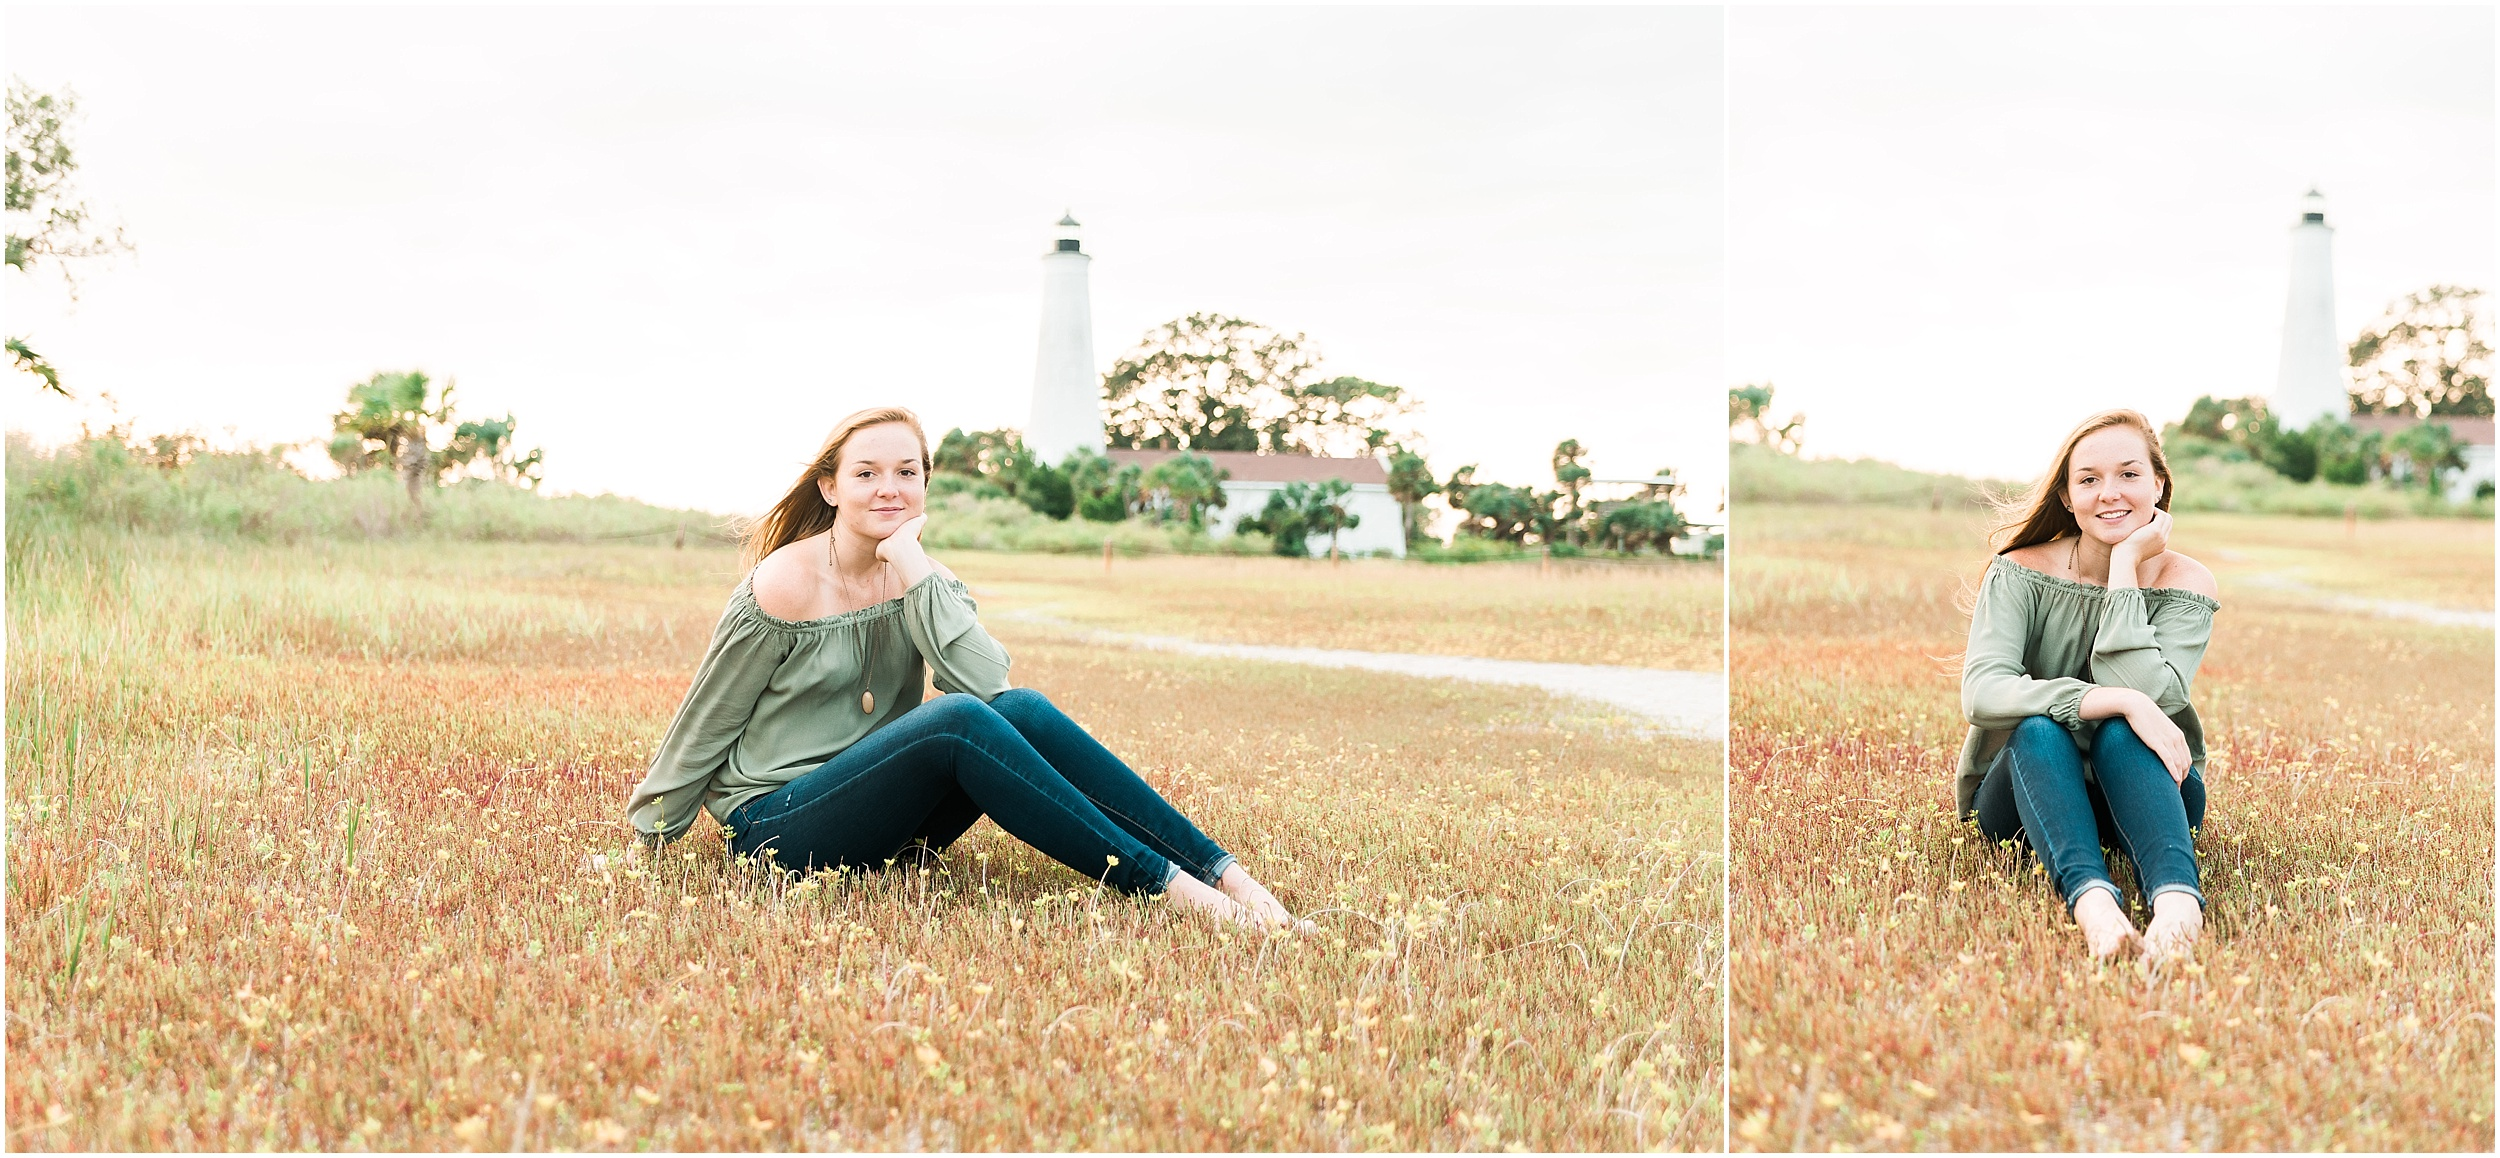 Tallahassee Florida Wedding & Senior Photographer, Anna Senior Session at Saint Marks Lighthouse, Crawfordville Florida_0022.jpg